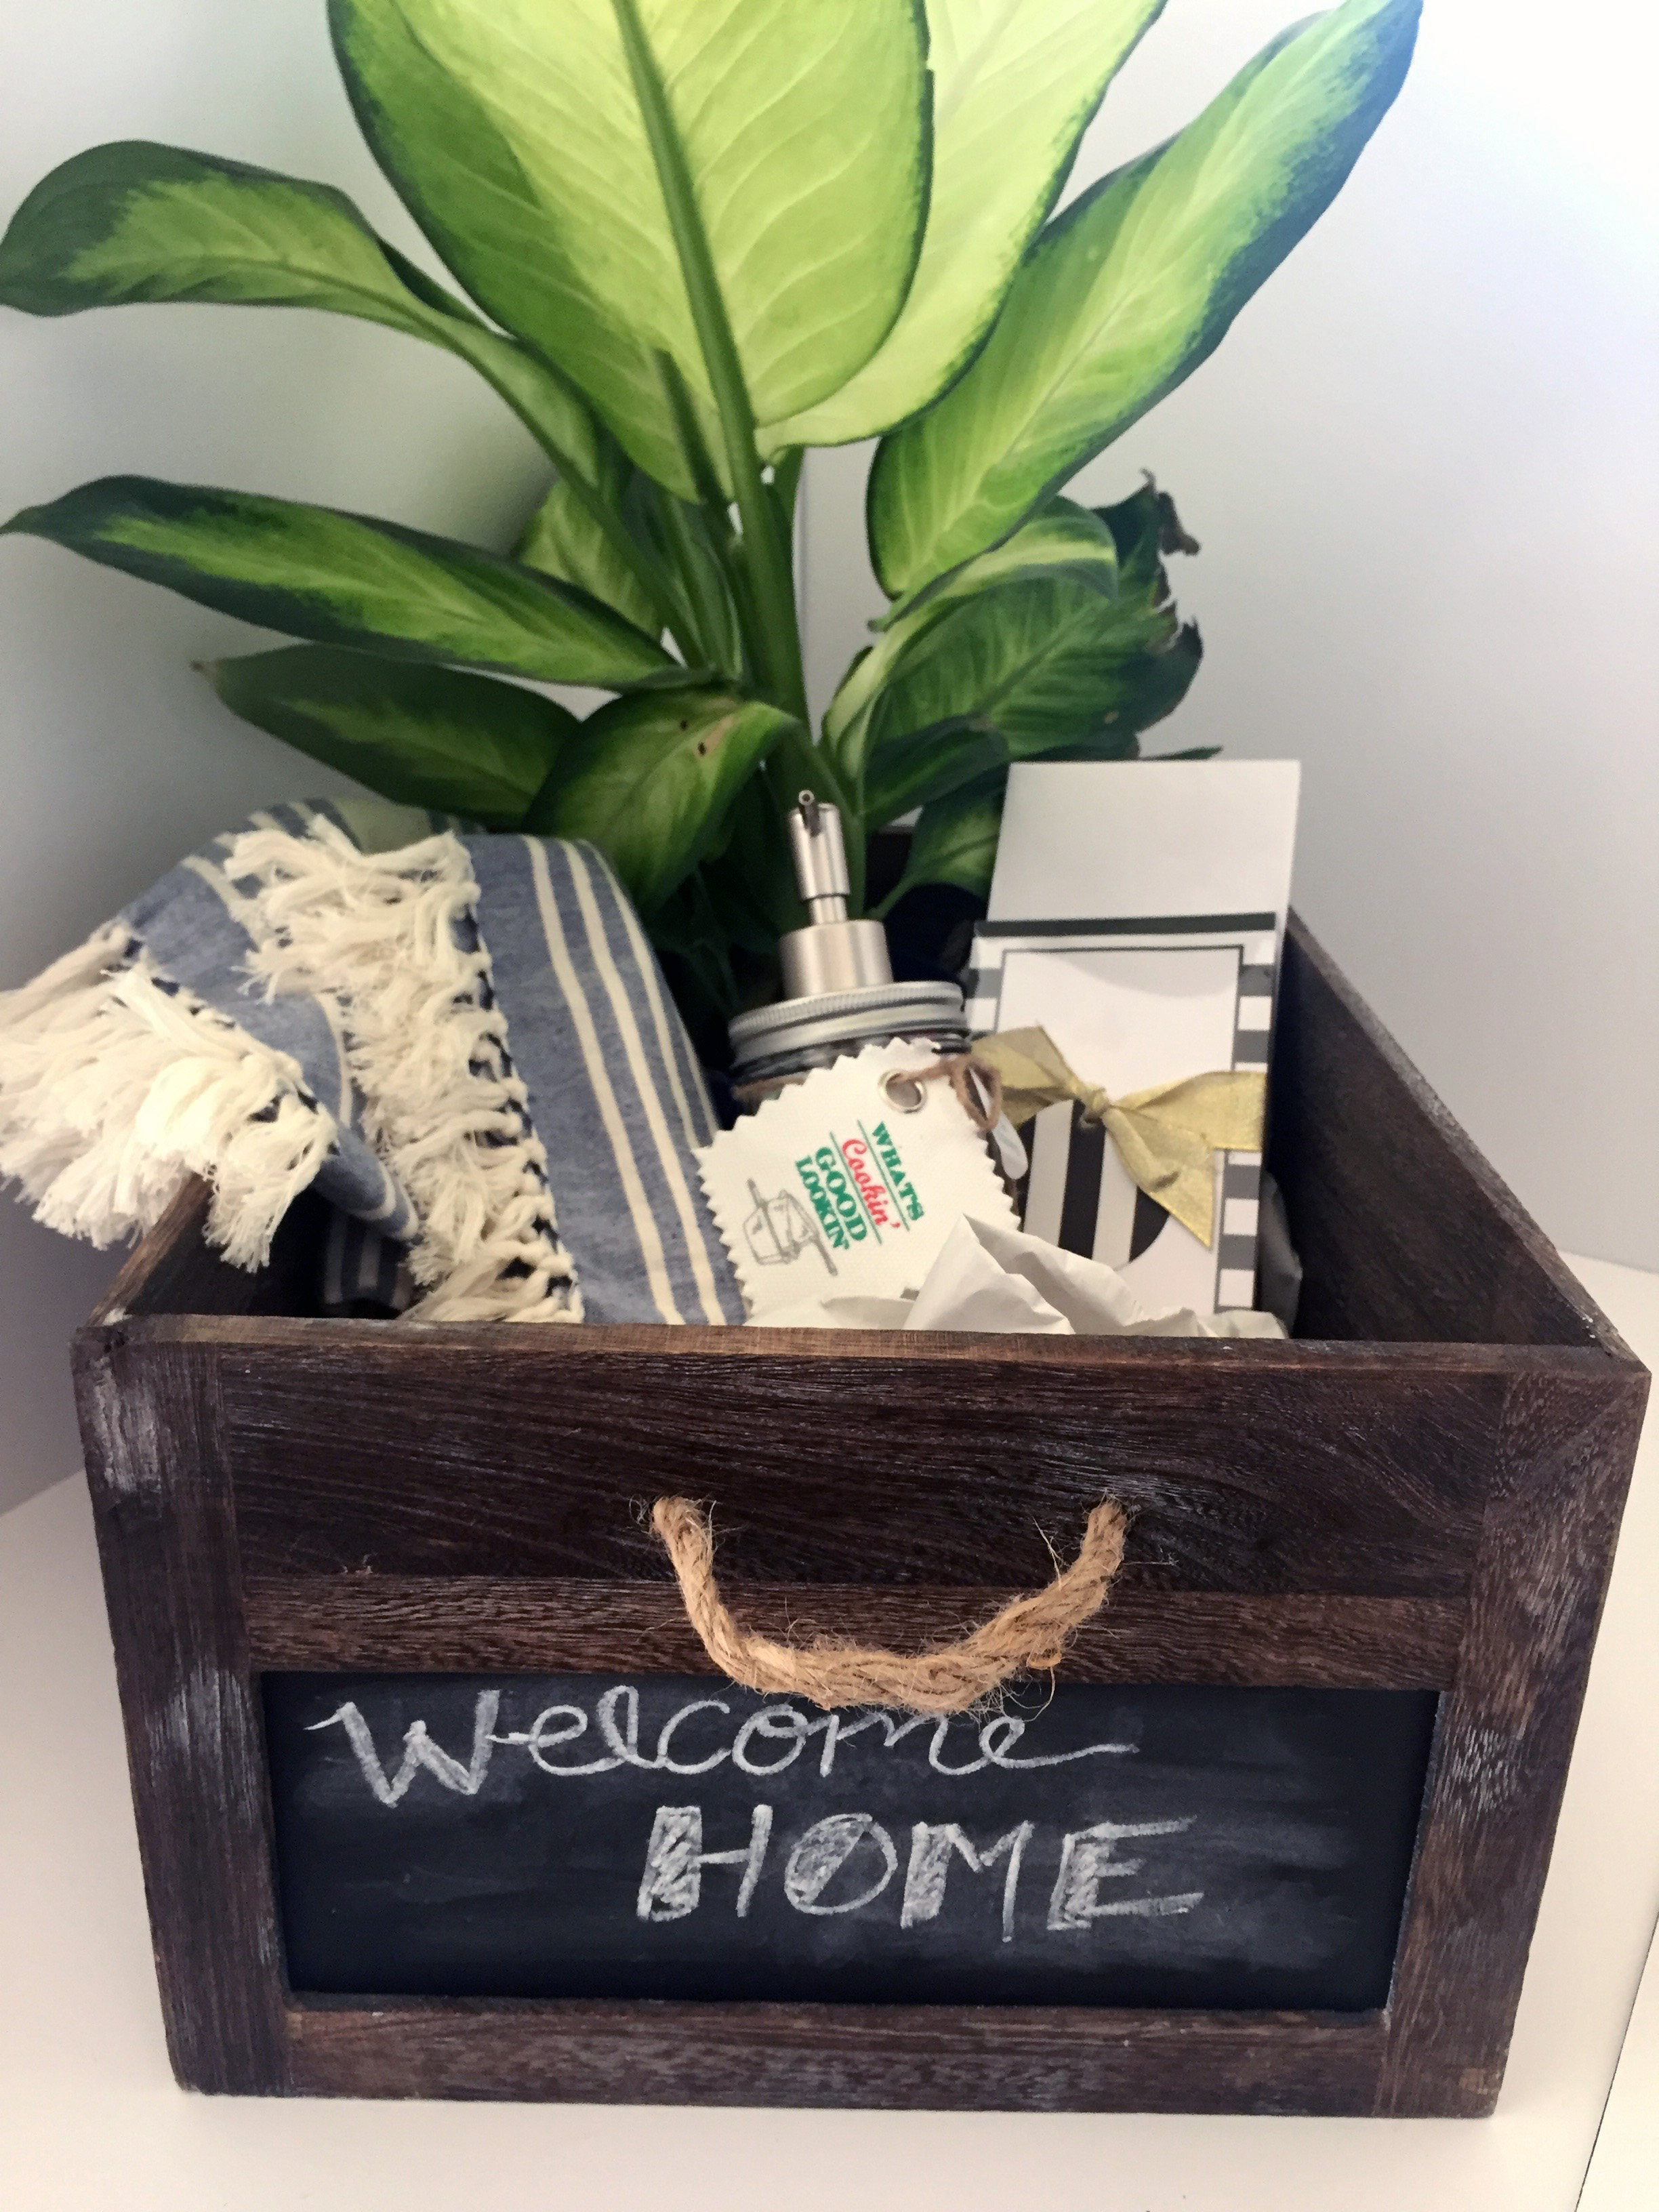 Housewarming gift guide town lifestyle design for What is an appropriate housewarming gift